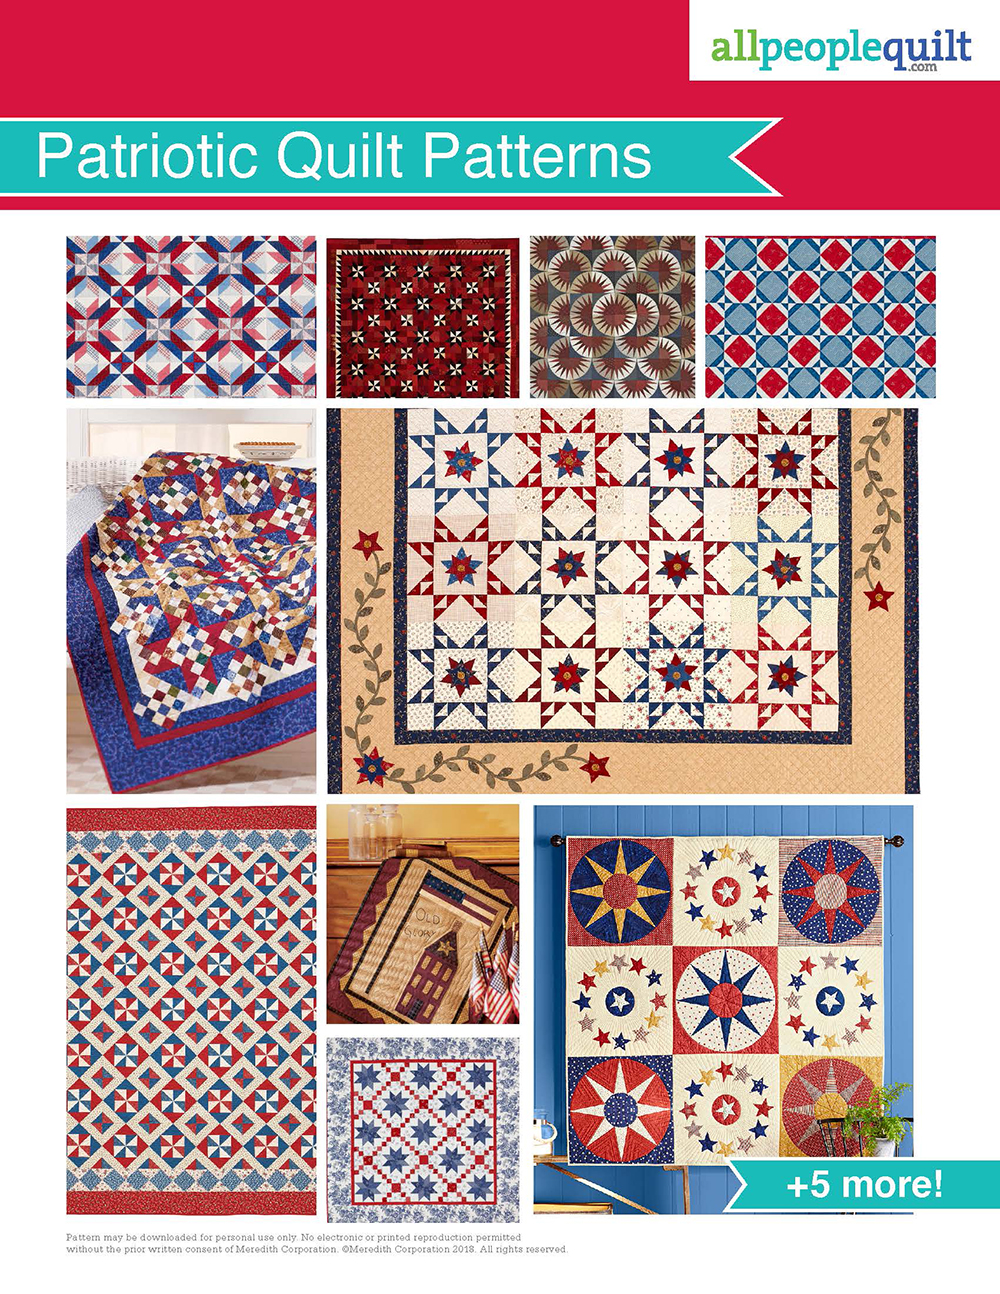 Patriotic Quilt Patterns Plan From American Patchwork Quilting